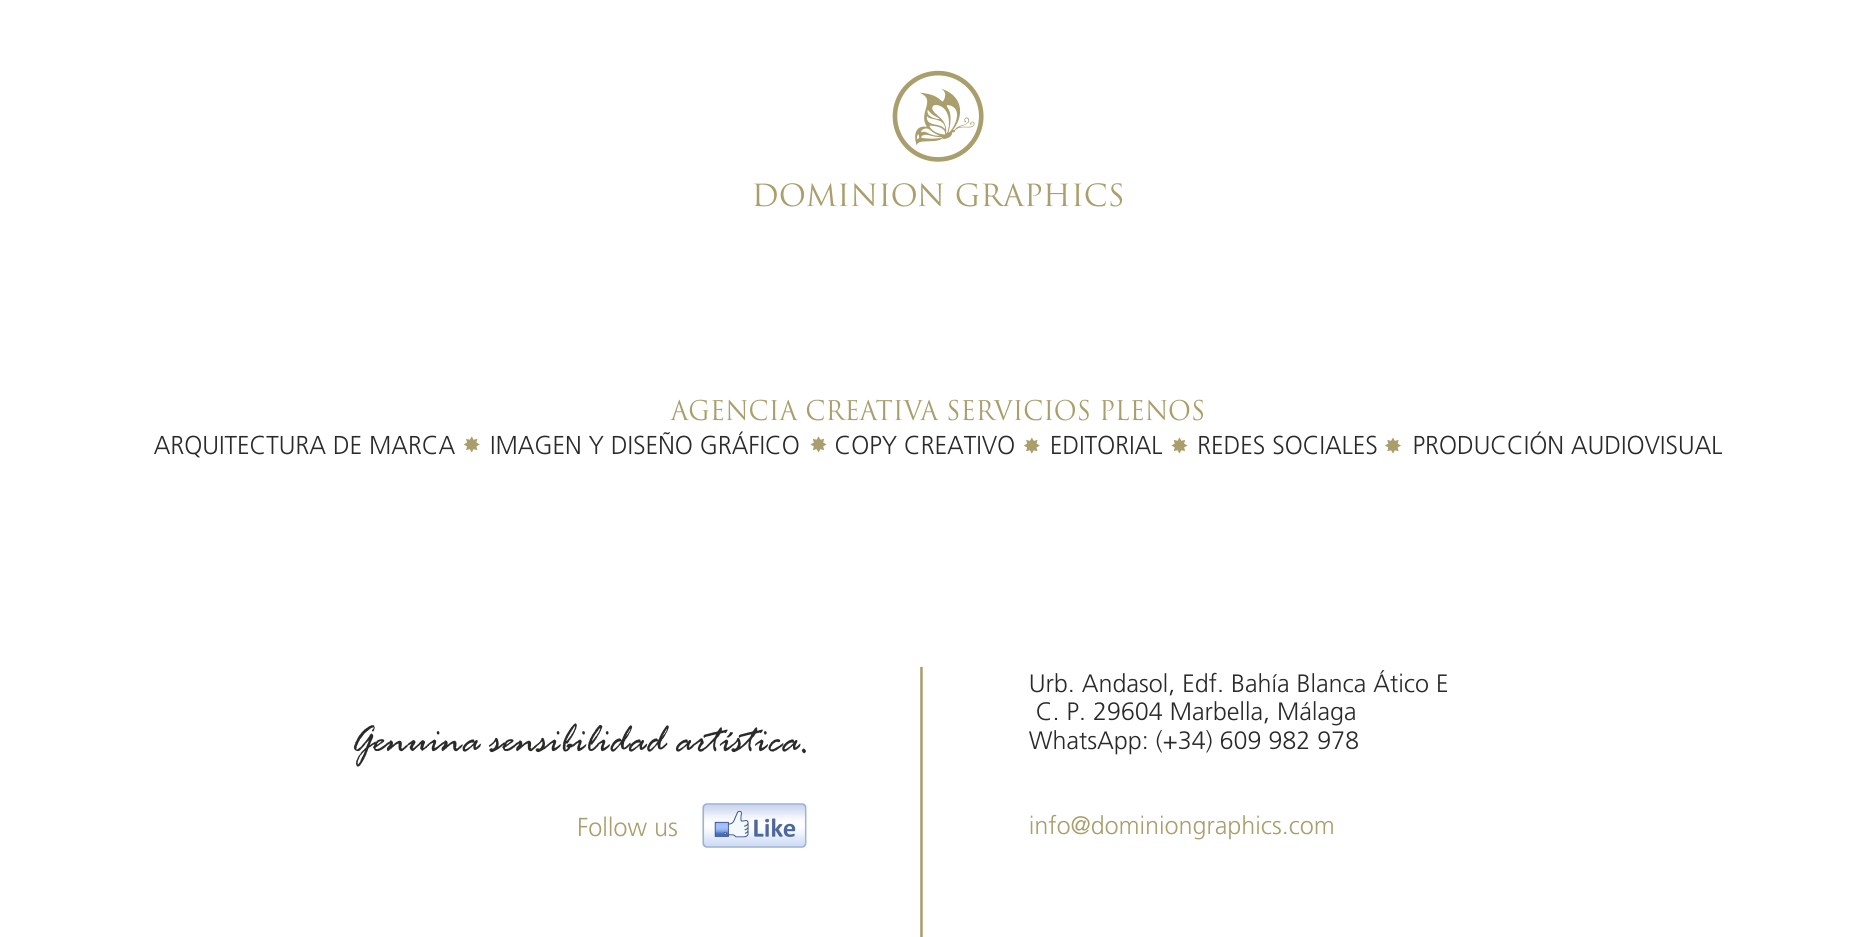 Dominion Graphics